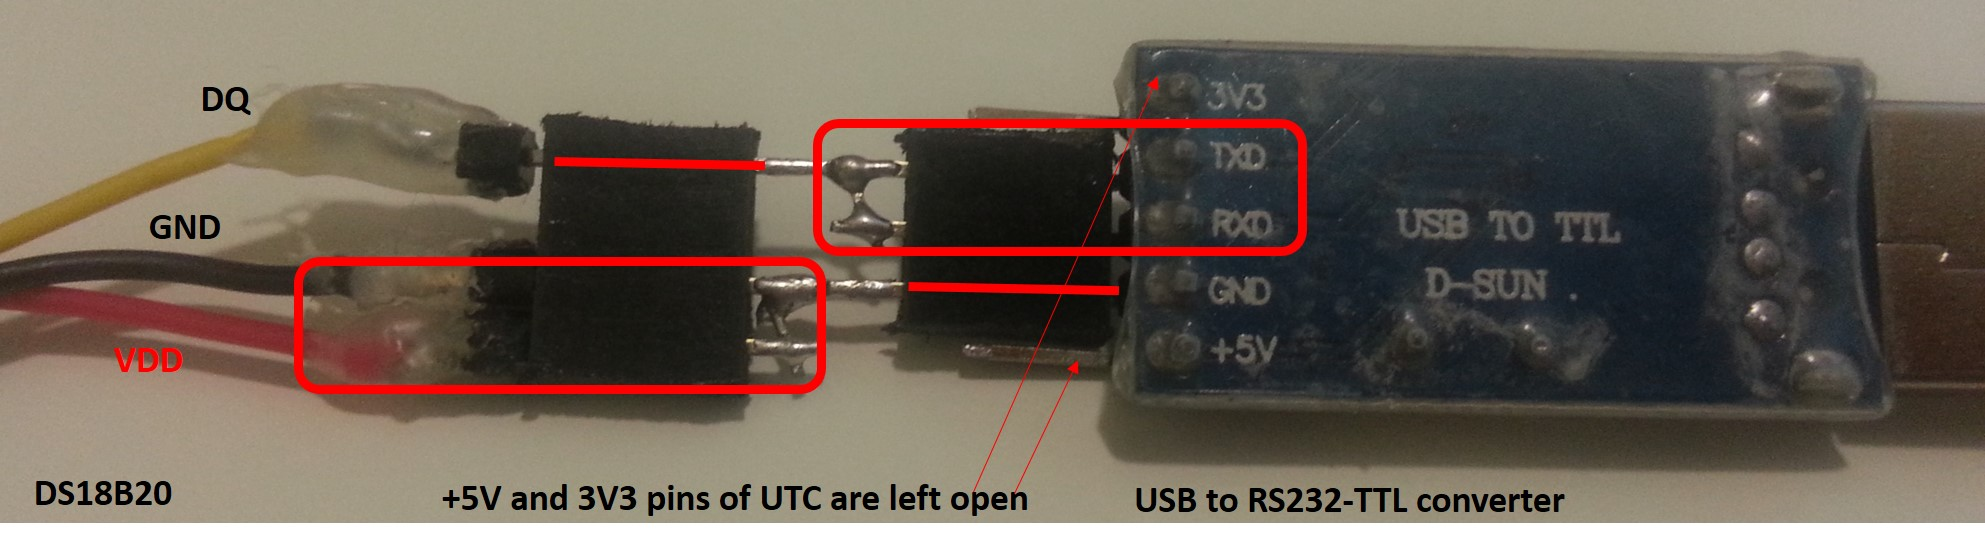 Picture of Hardware Connections Between DS18B20 (DS) and USB to RS232 TLL Converter (UTC)